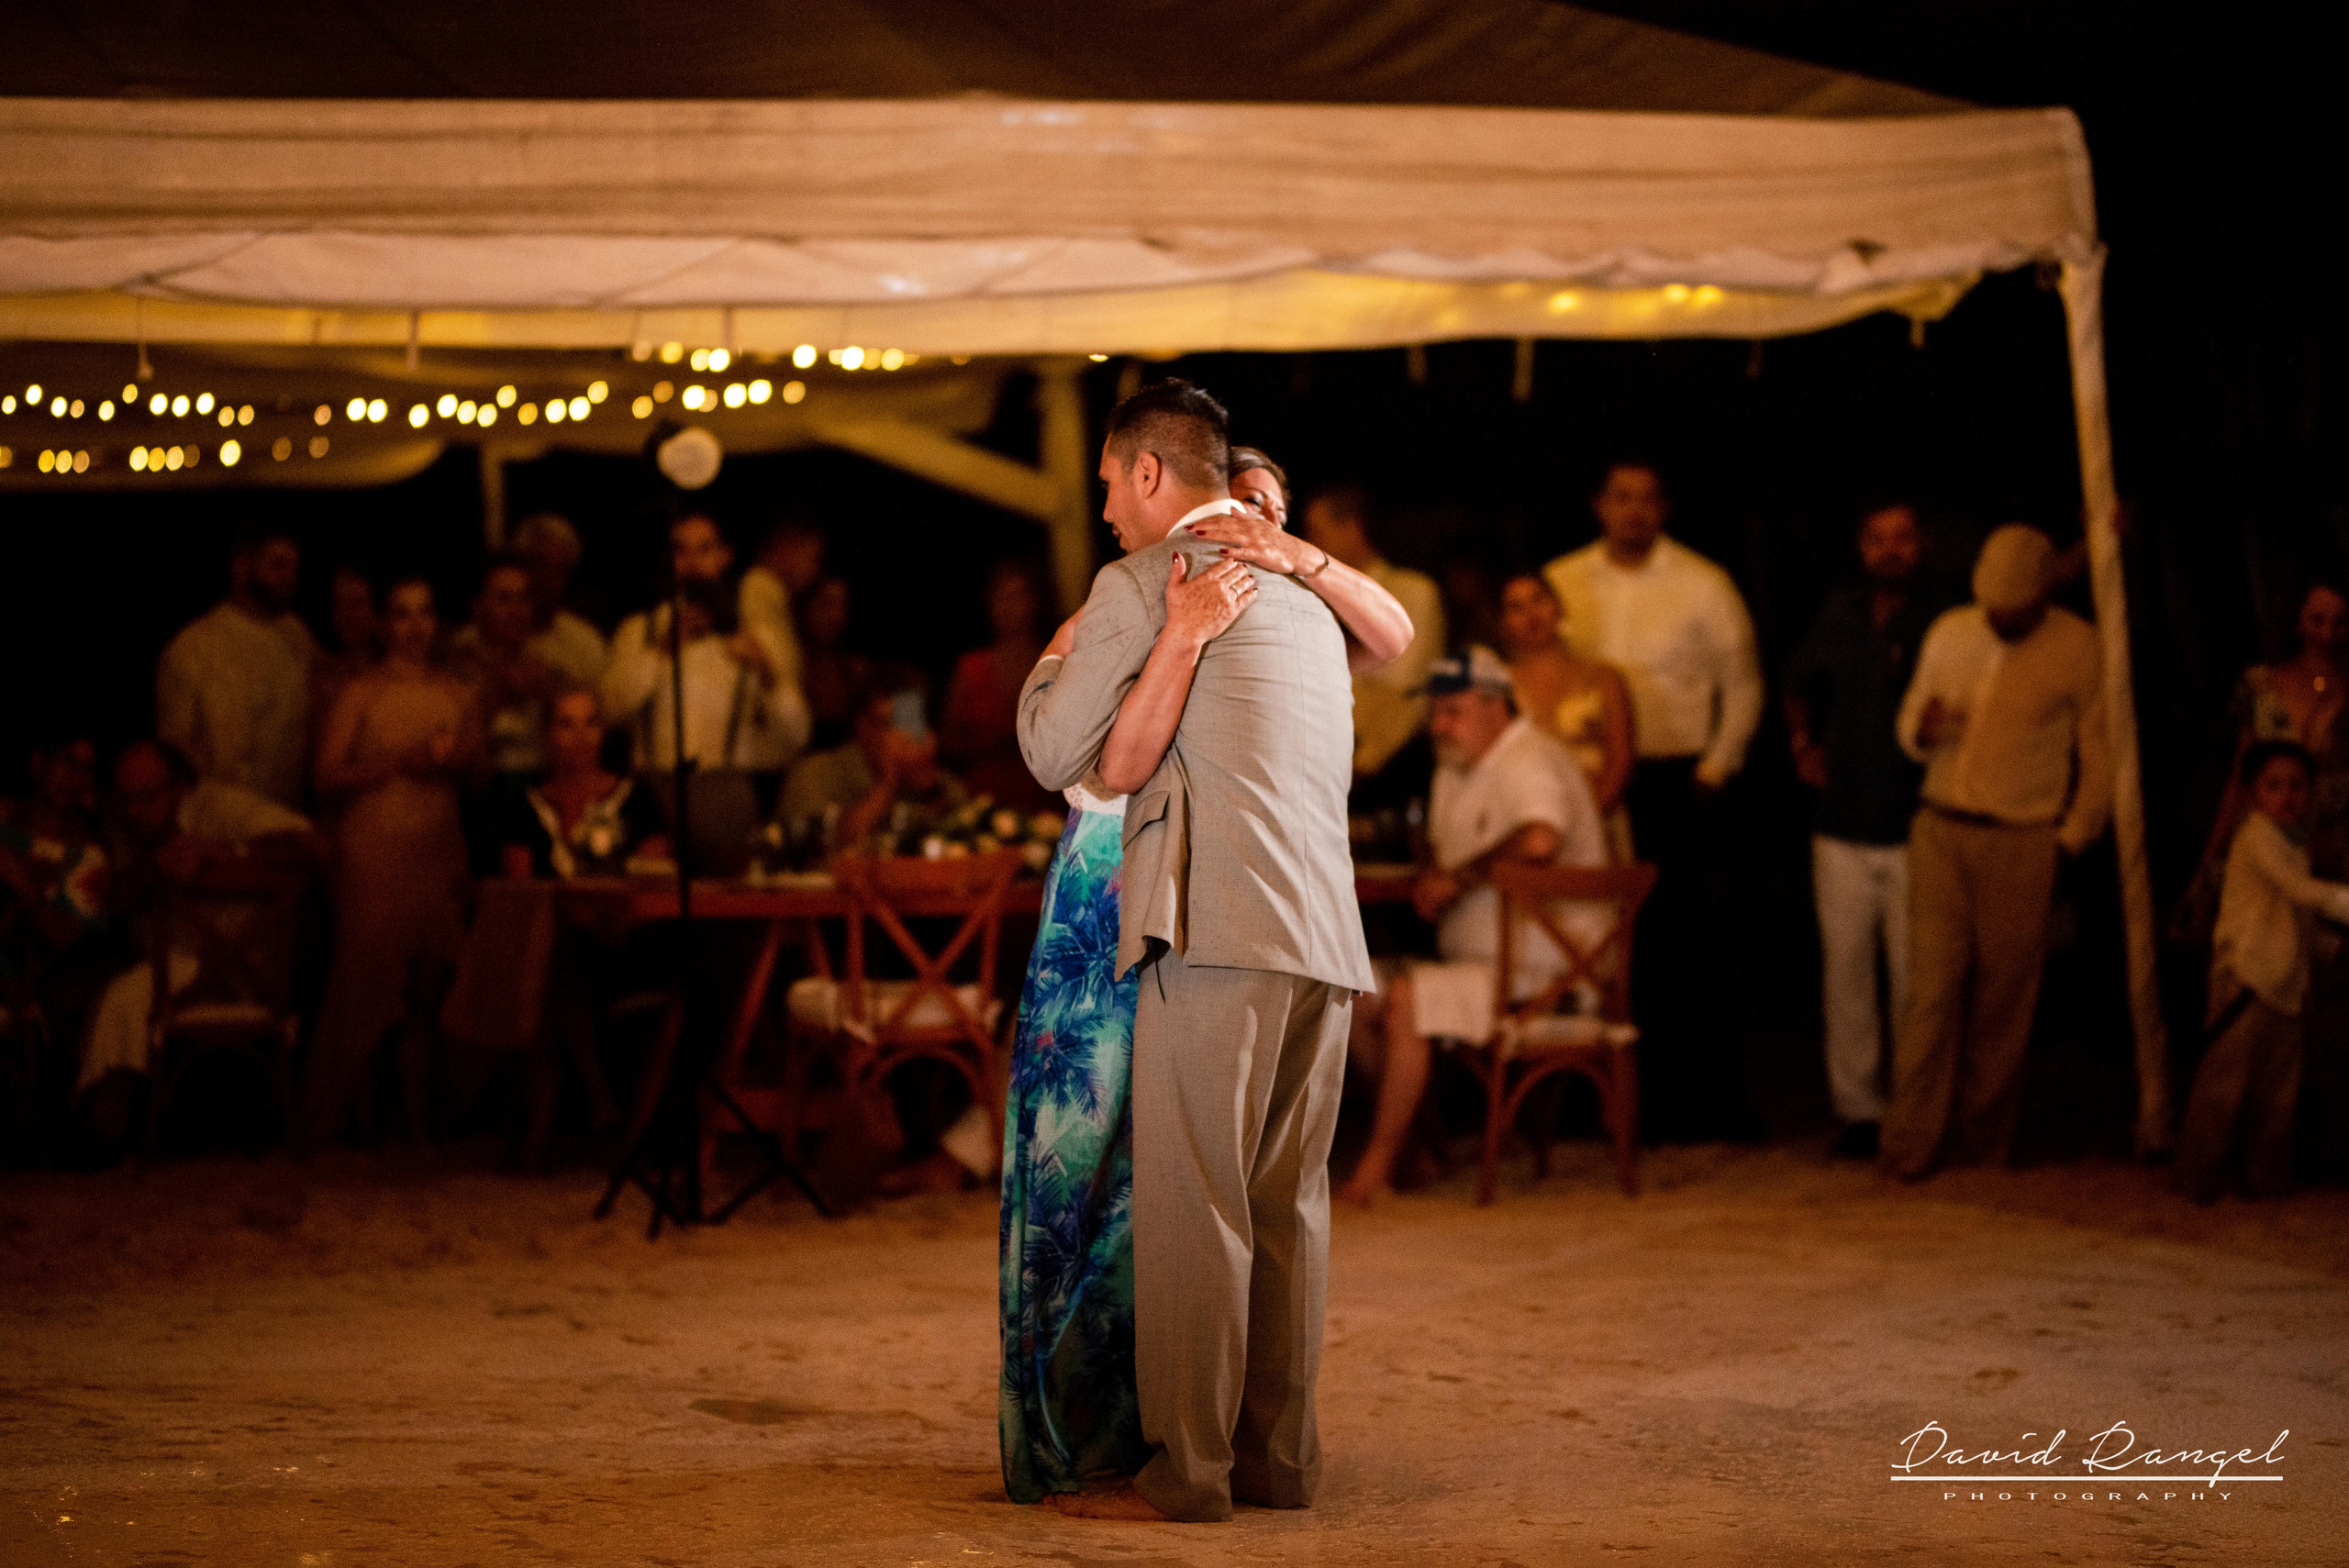 Beach+photo+session+couple+love+hugh+bride+groom+first+dance+mother